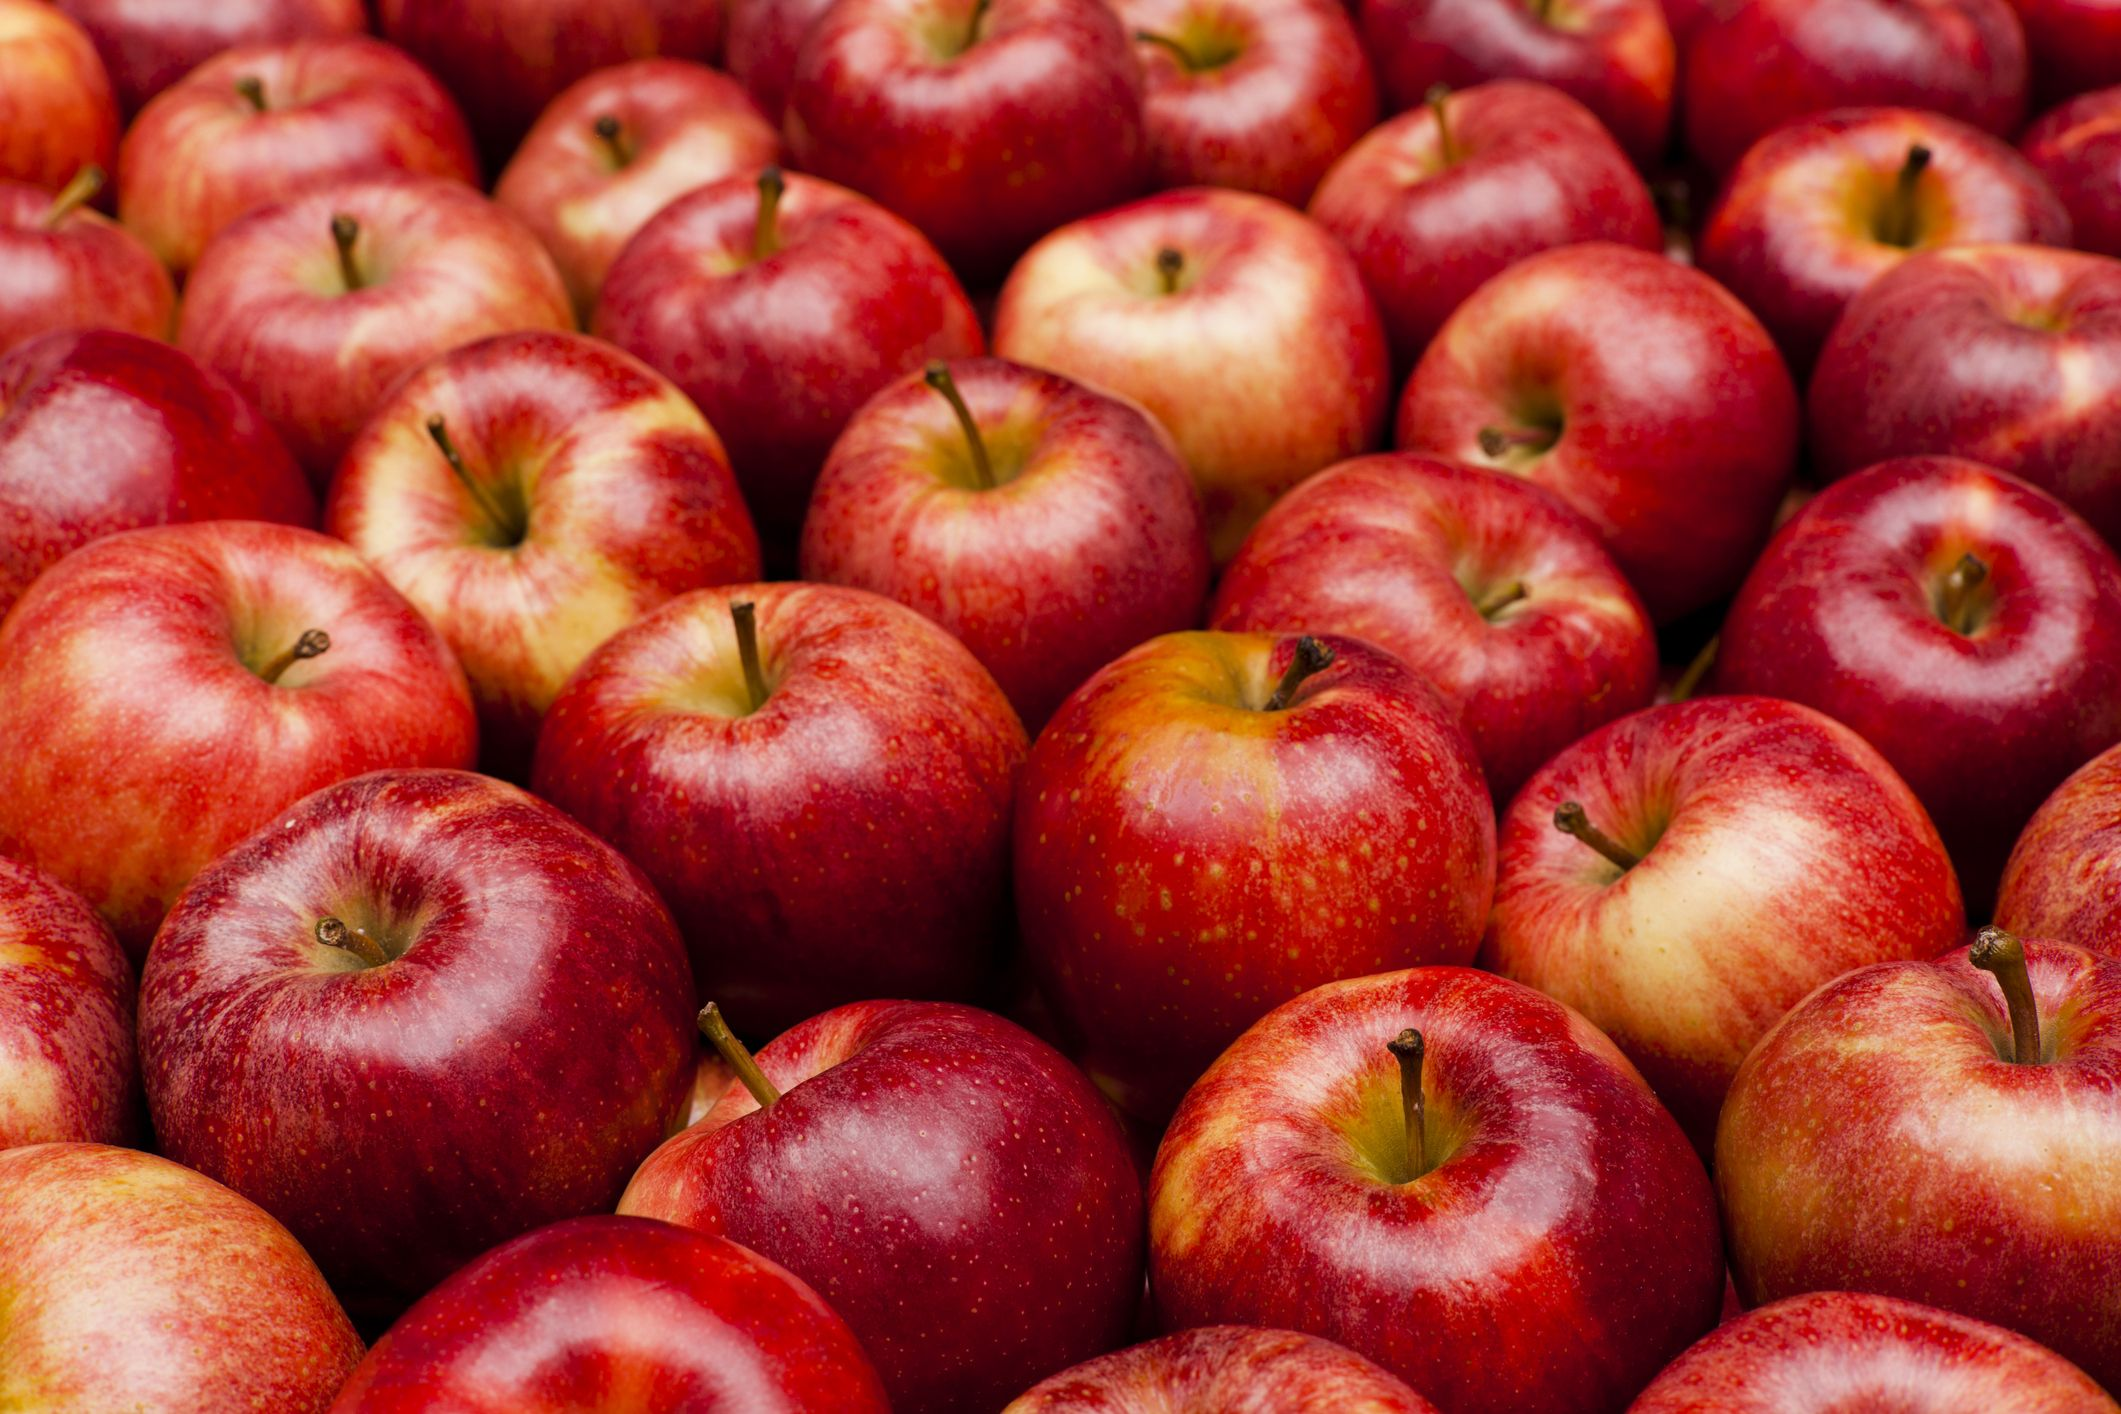 how many calories in an apple? - apple calories